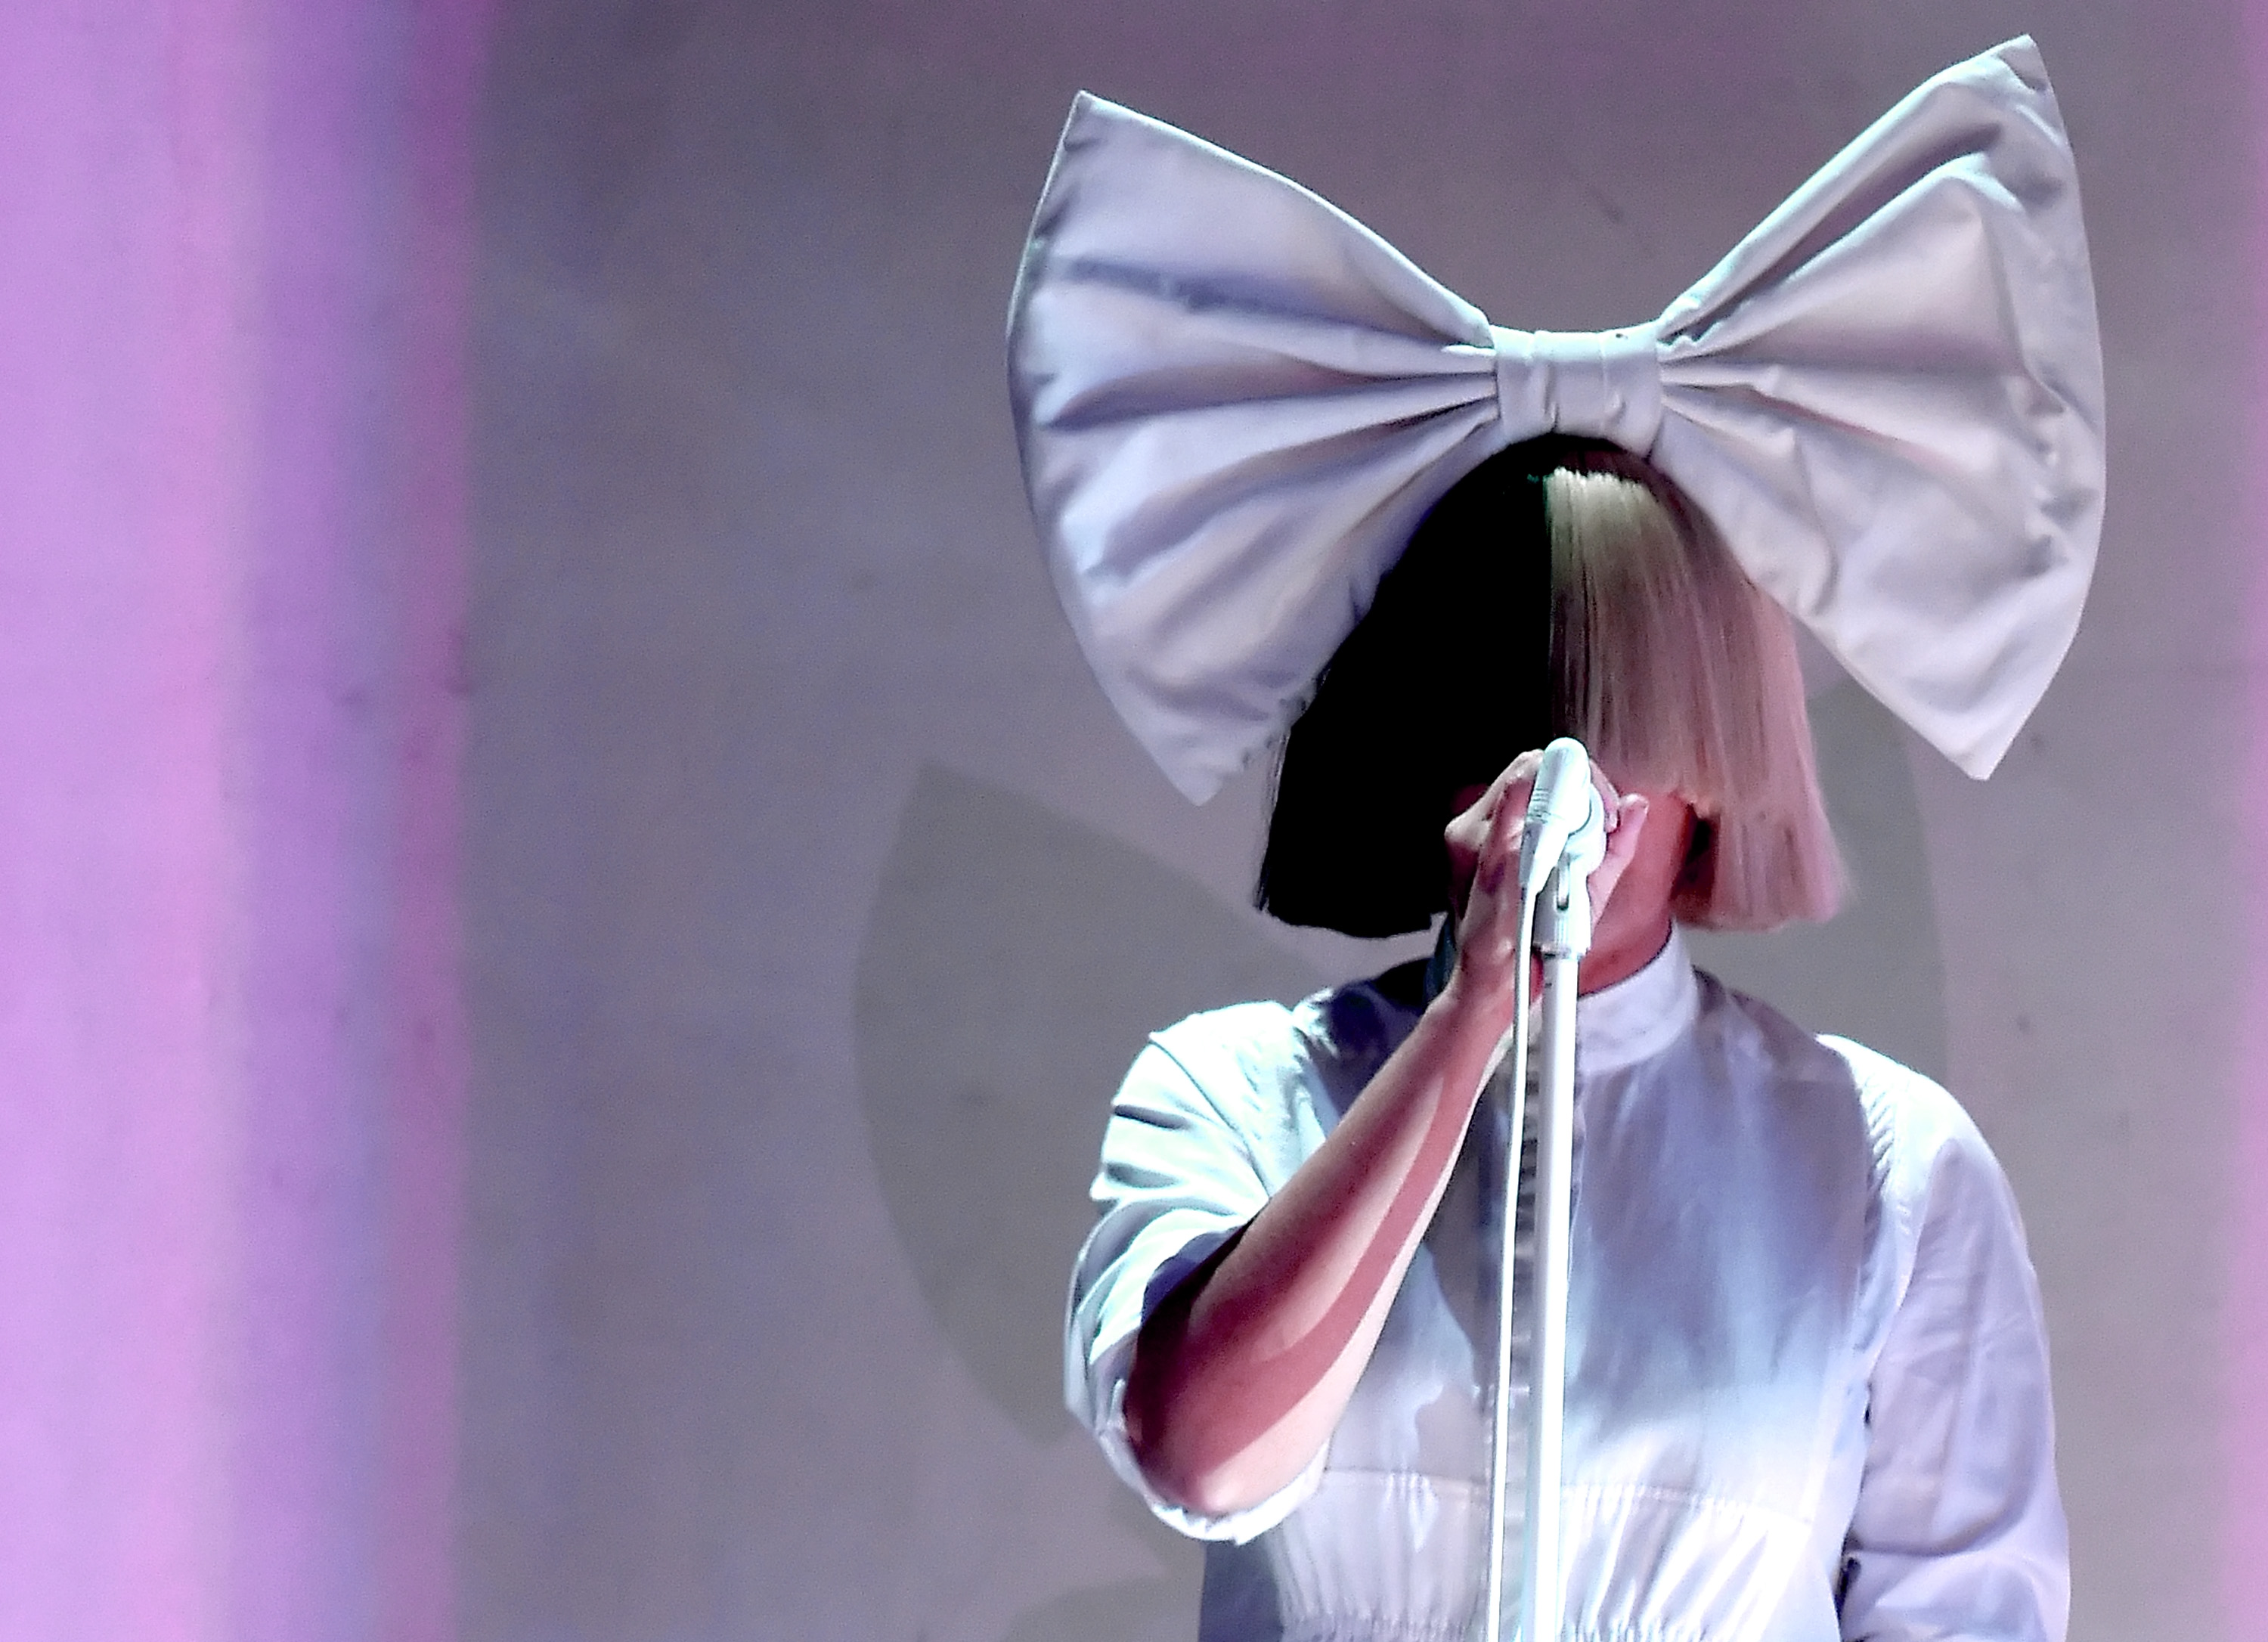 Recording artist Sia performs onstage at the 2016 iHeartRadio Music Festival at T-Mobile Arena on September 23, 2016 in Las Vegas, Nevada.